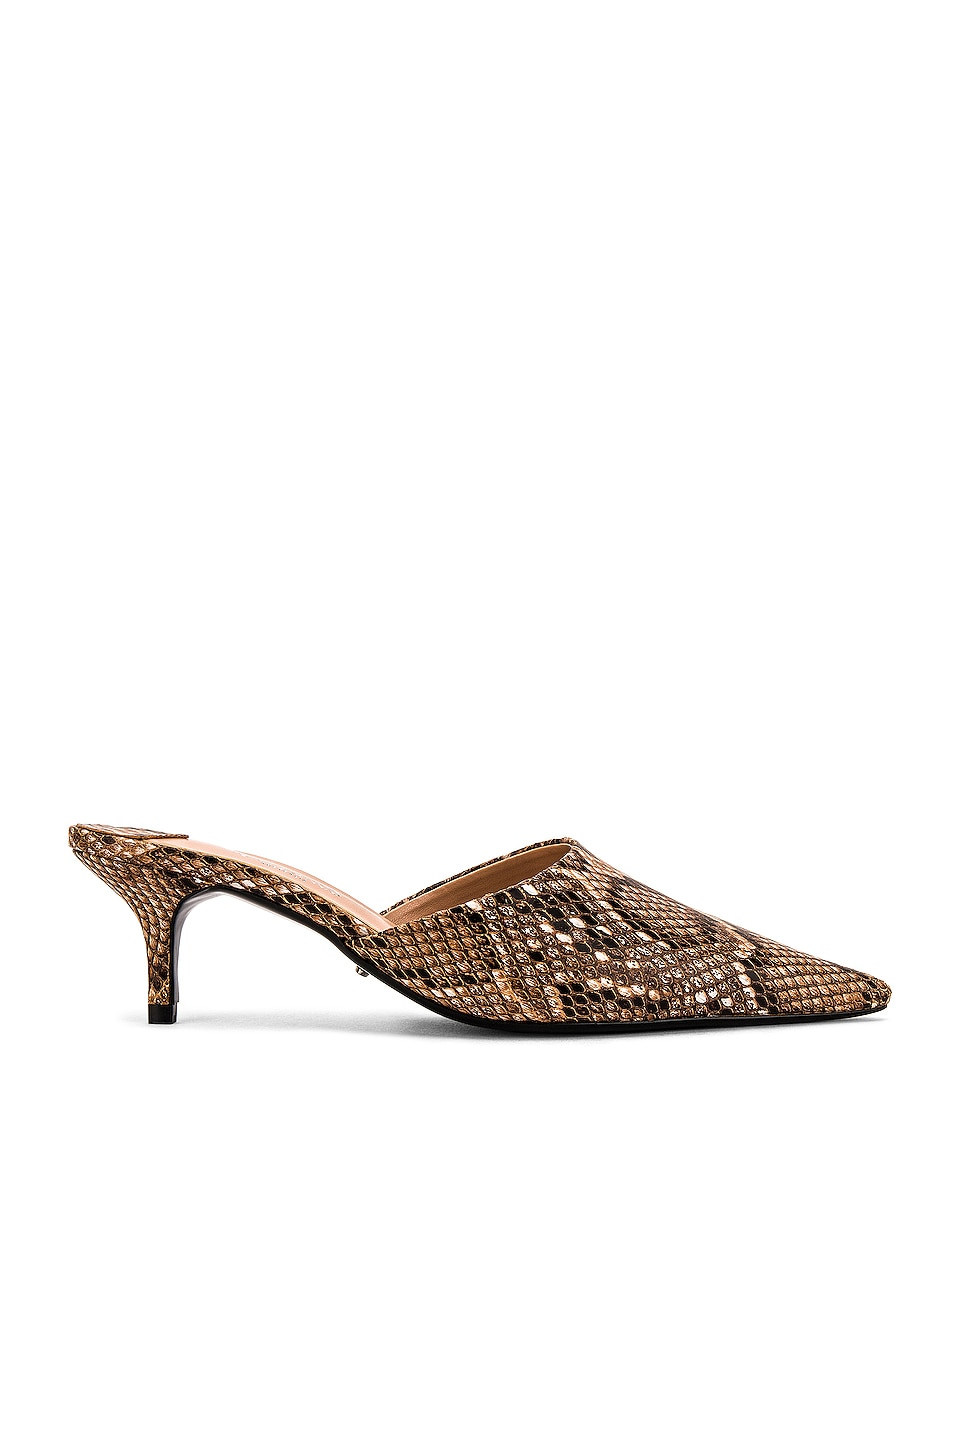 Tony Bianco North Mule in Brown Multi Snake